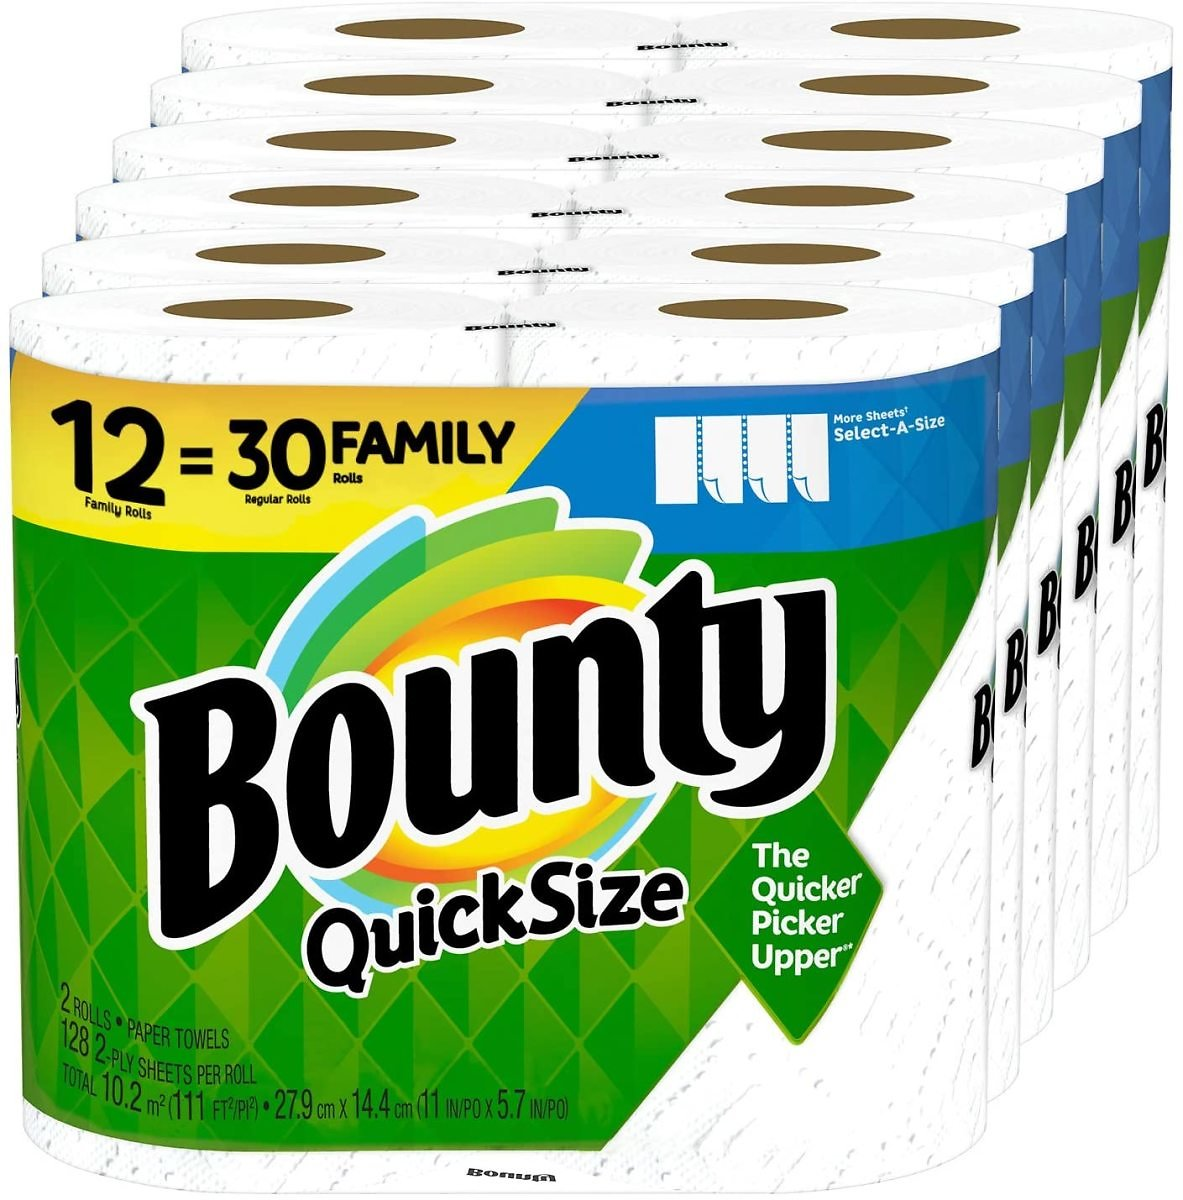 Bounty Quick-Size Paper Towels, White, 12 Family Rolls = 30 Regular Rolls (Packaging May Vary): Health & Personal Care